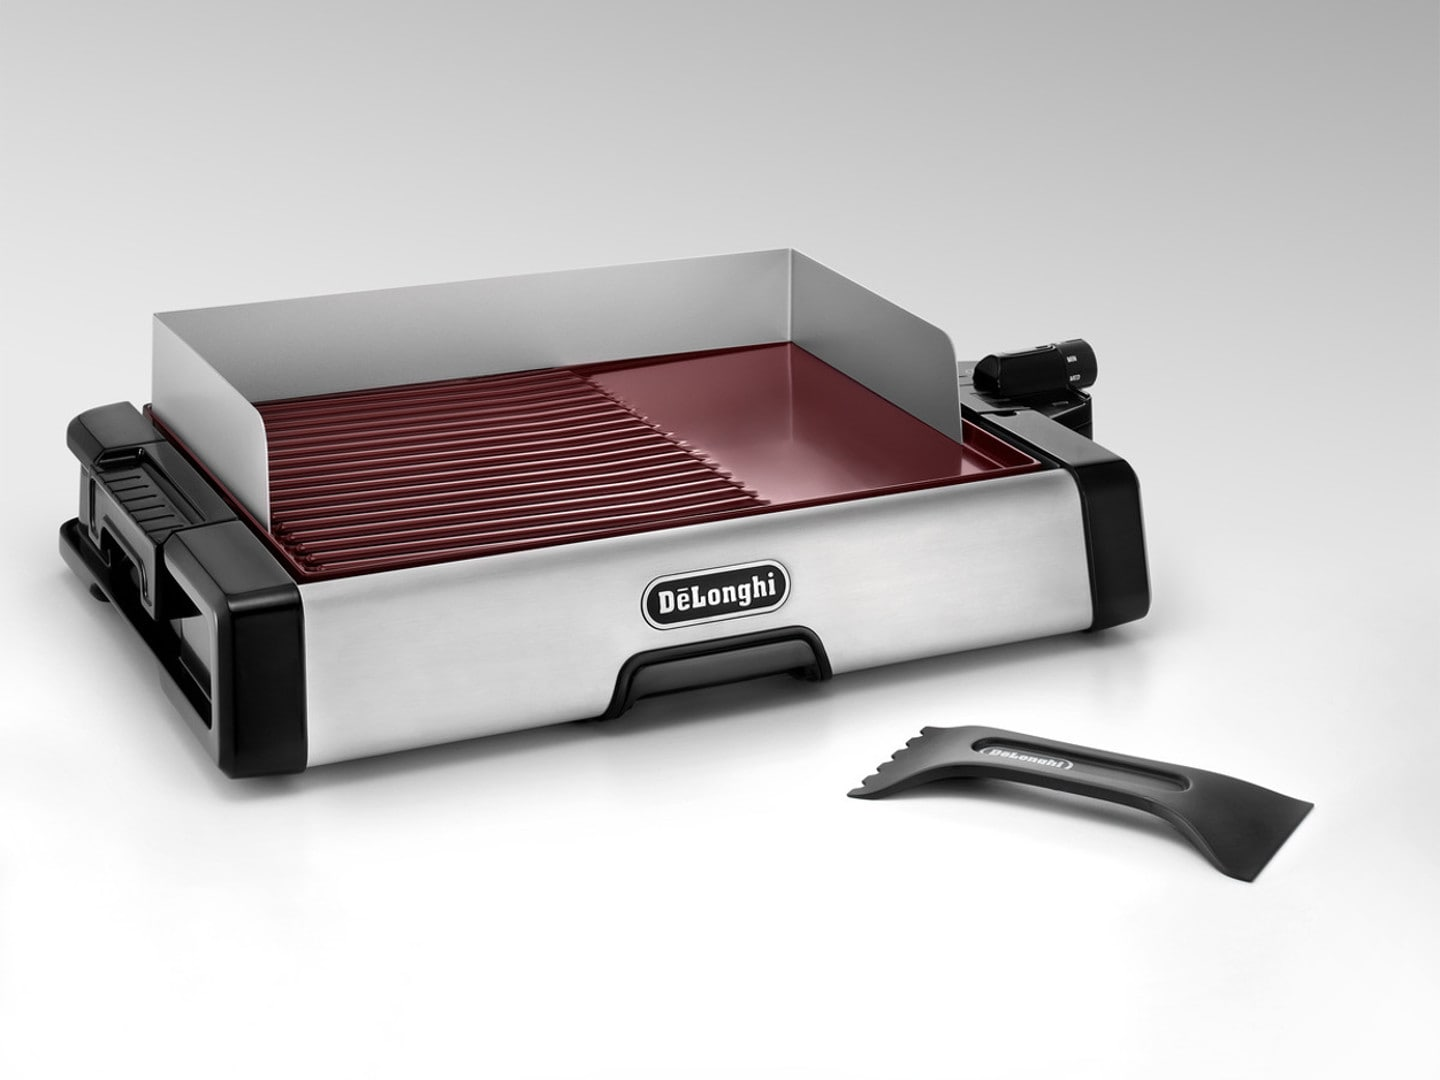 Specifications Electric Barbeque Grill Bg 500c De Longhi